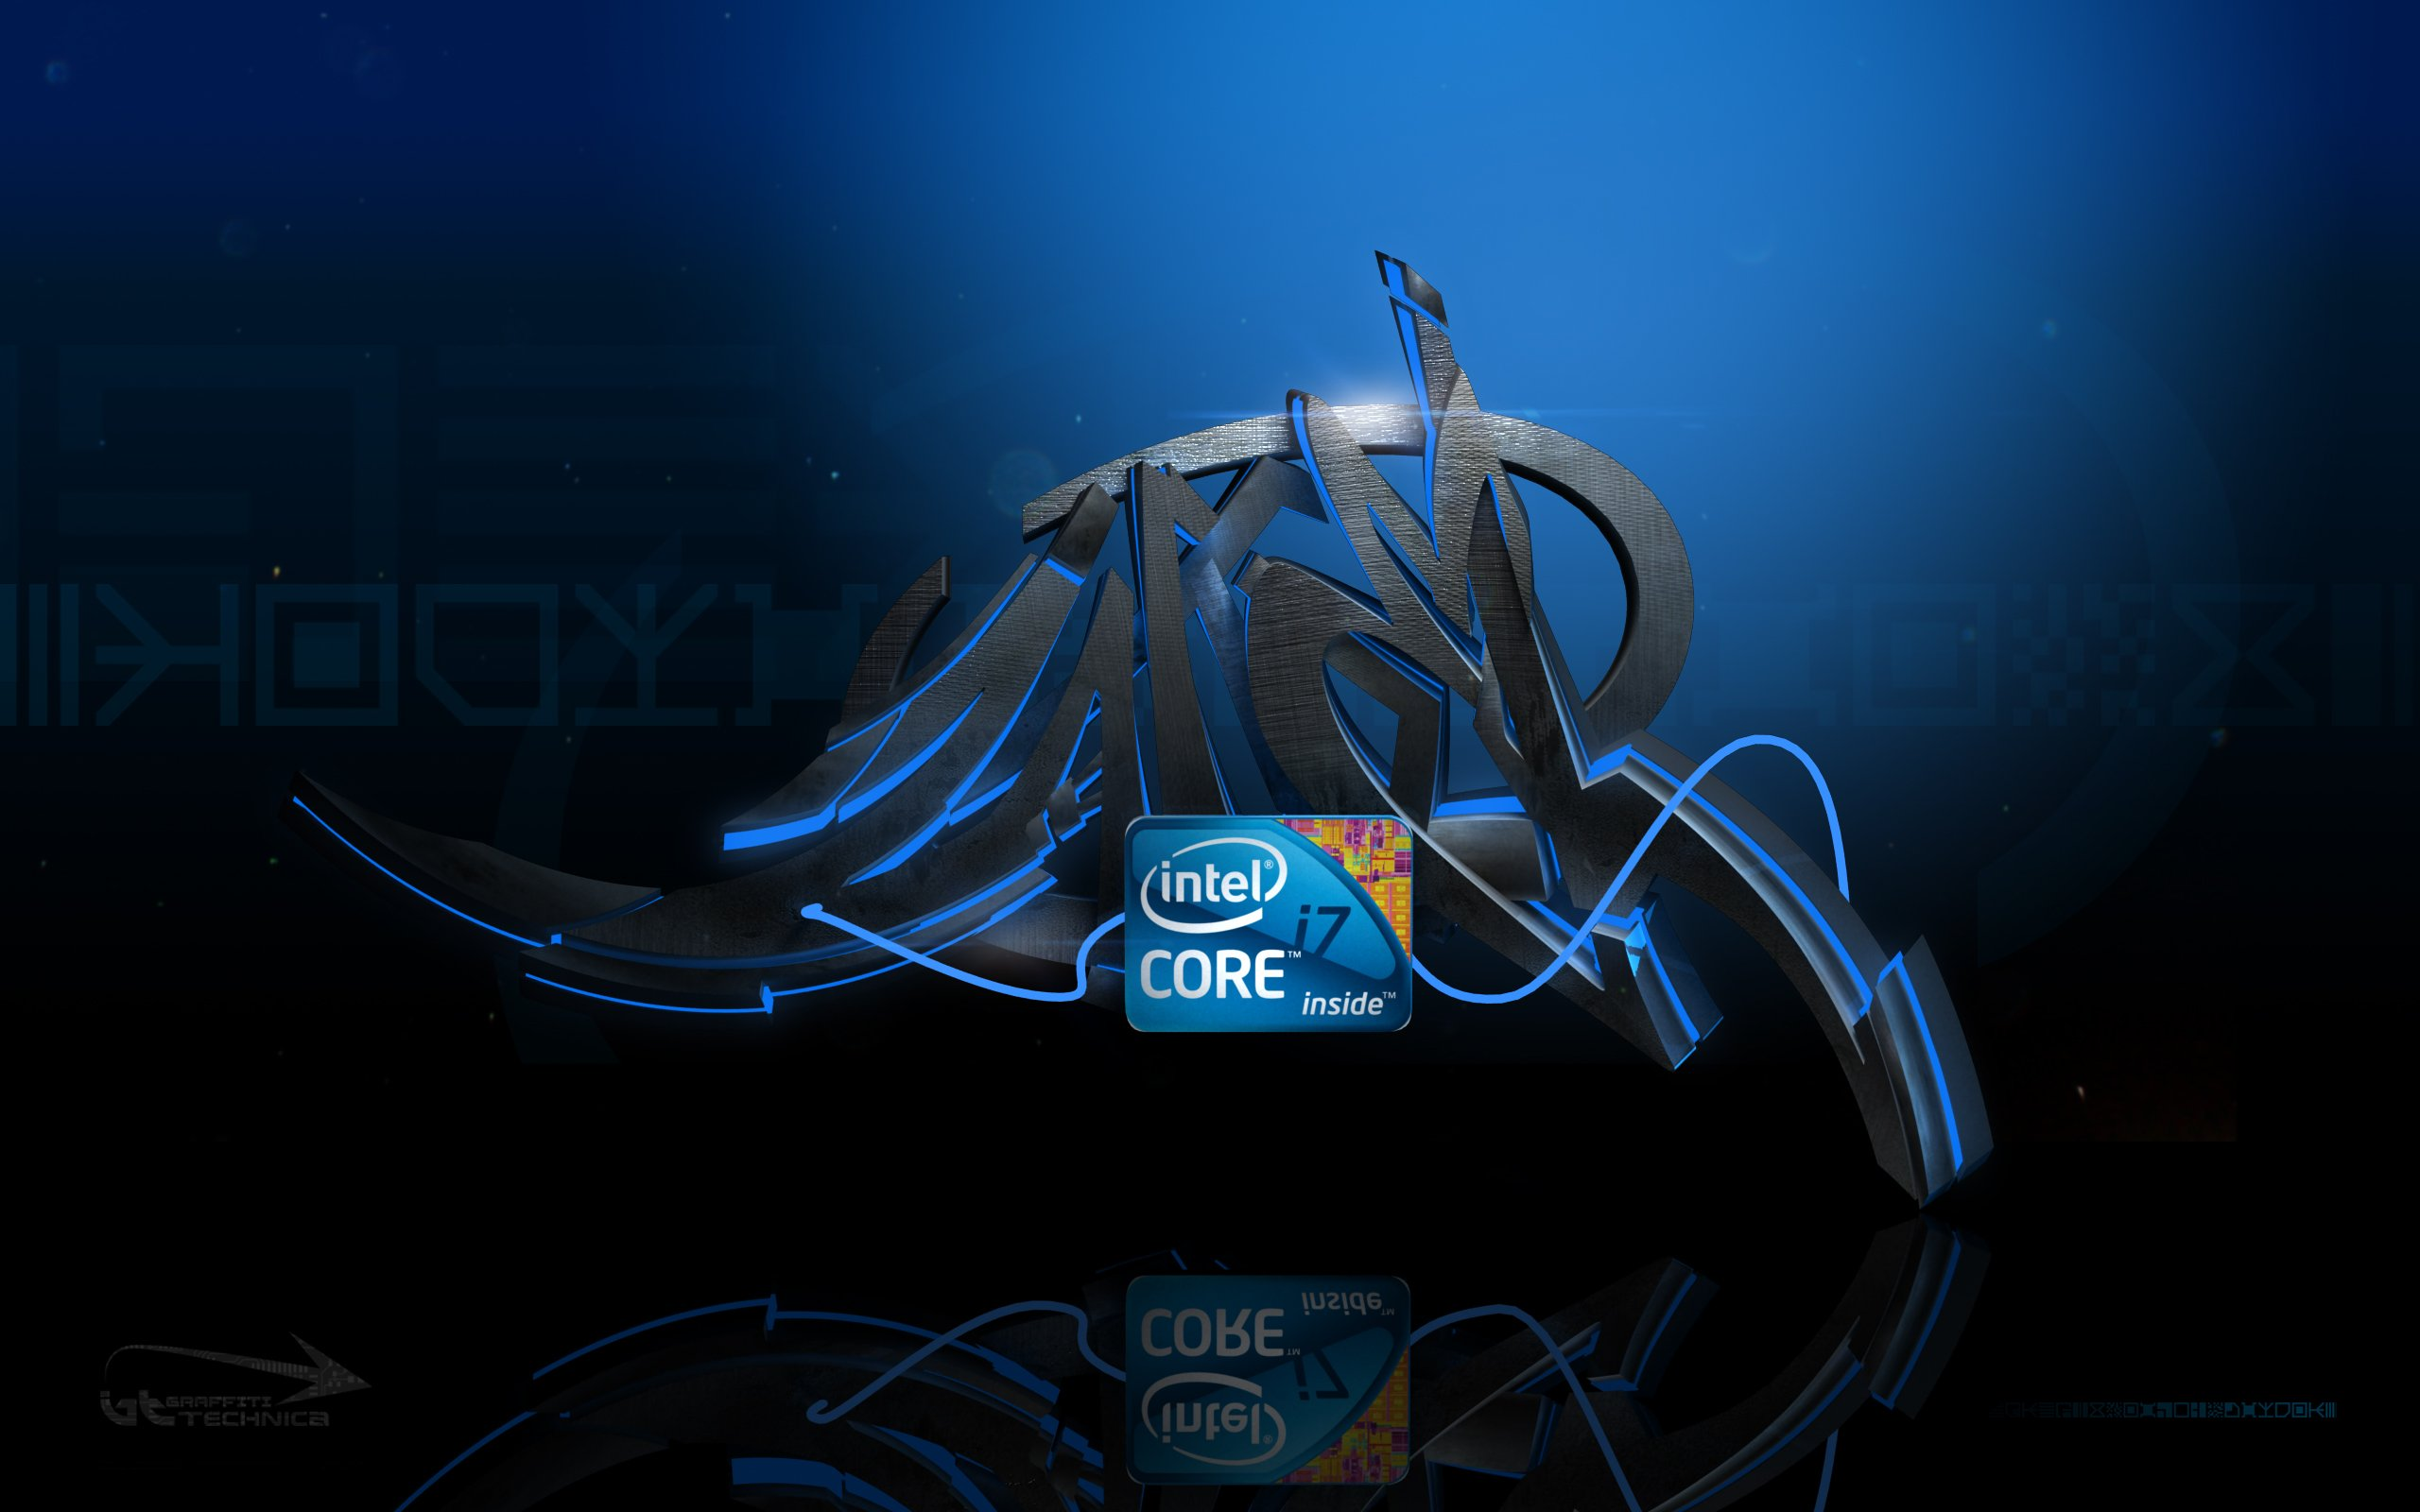 Wallpapers Intel logo hd wallpapers Intel wallpapers Intel inside 2560x1600